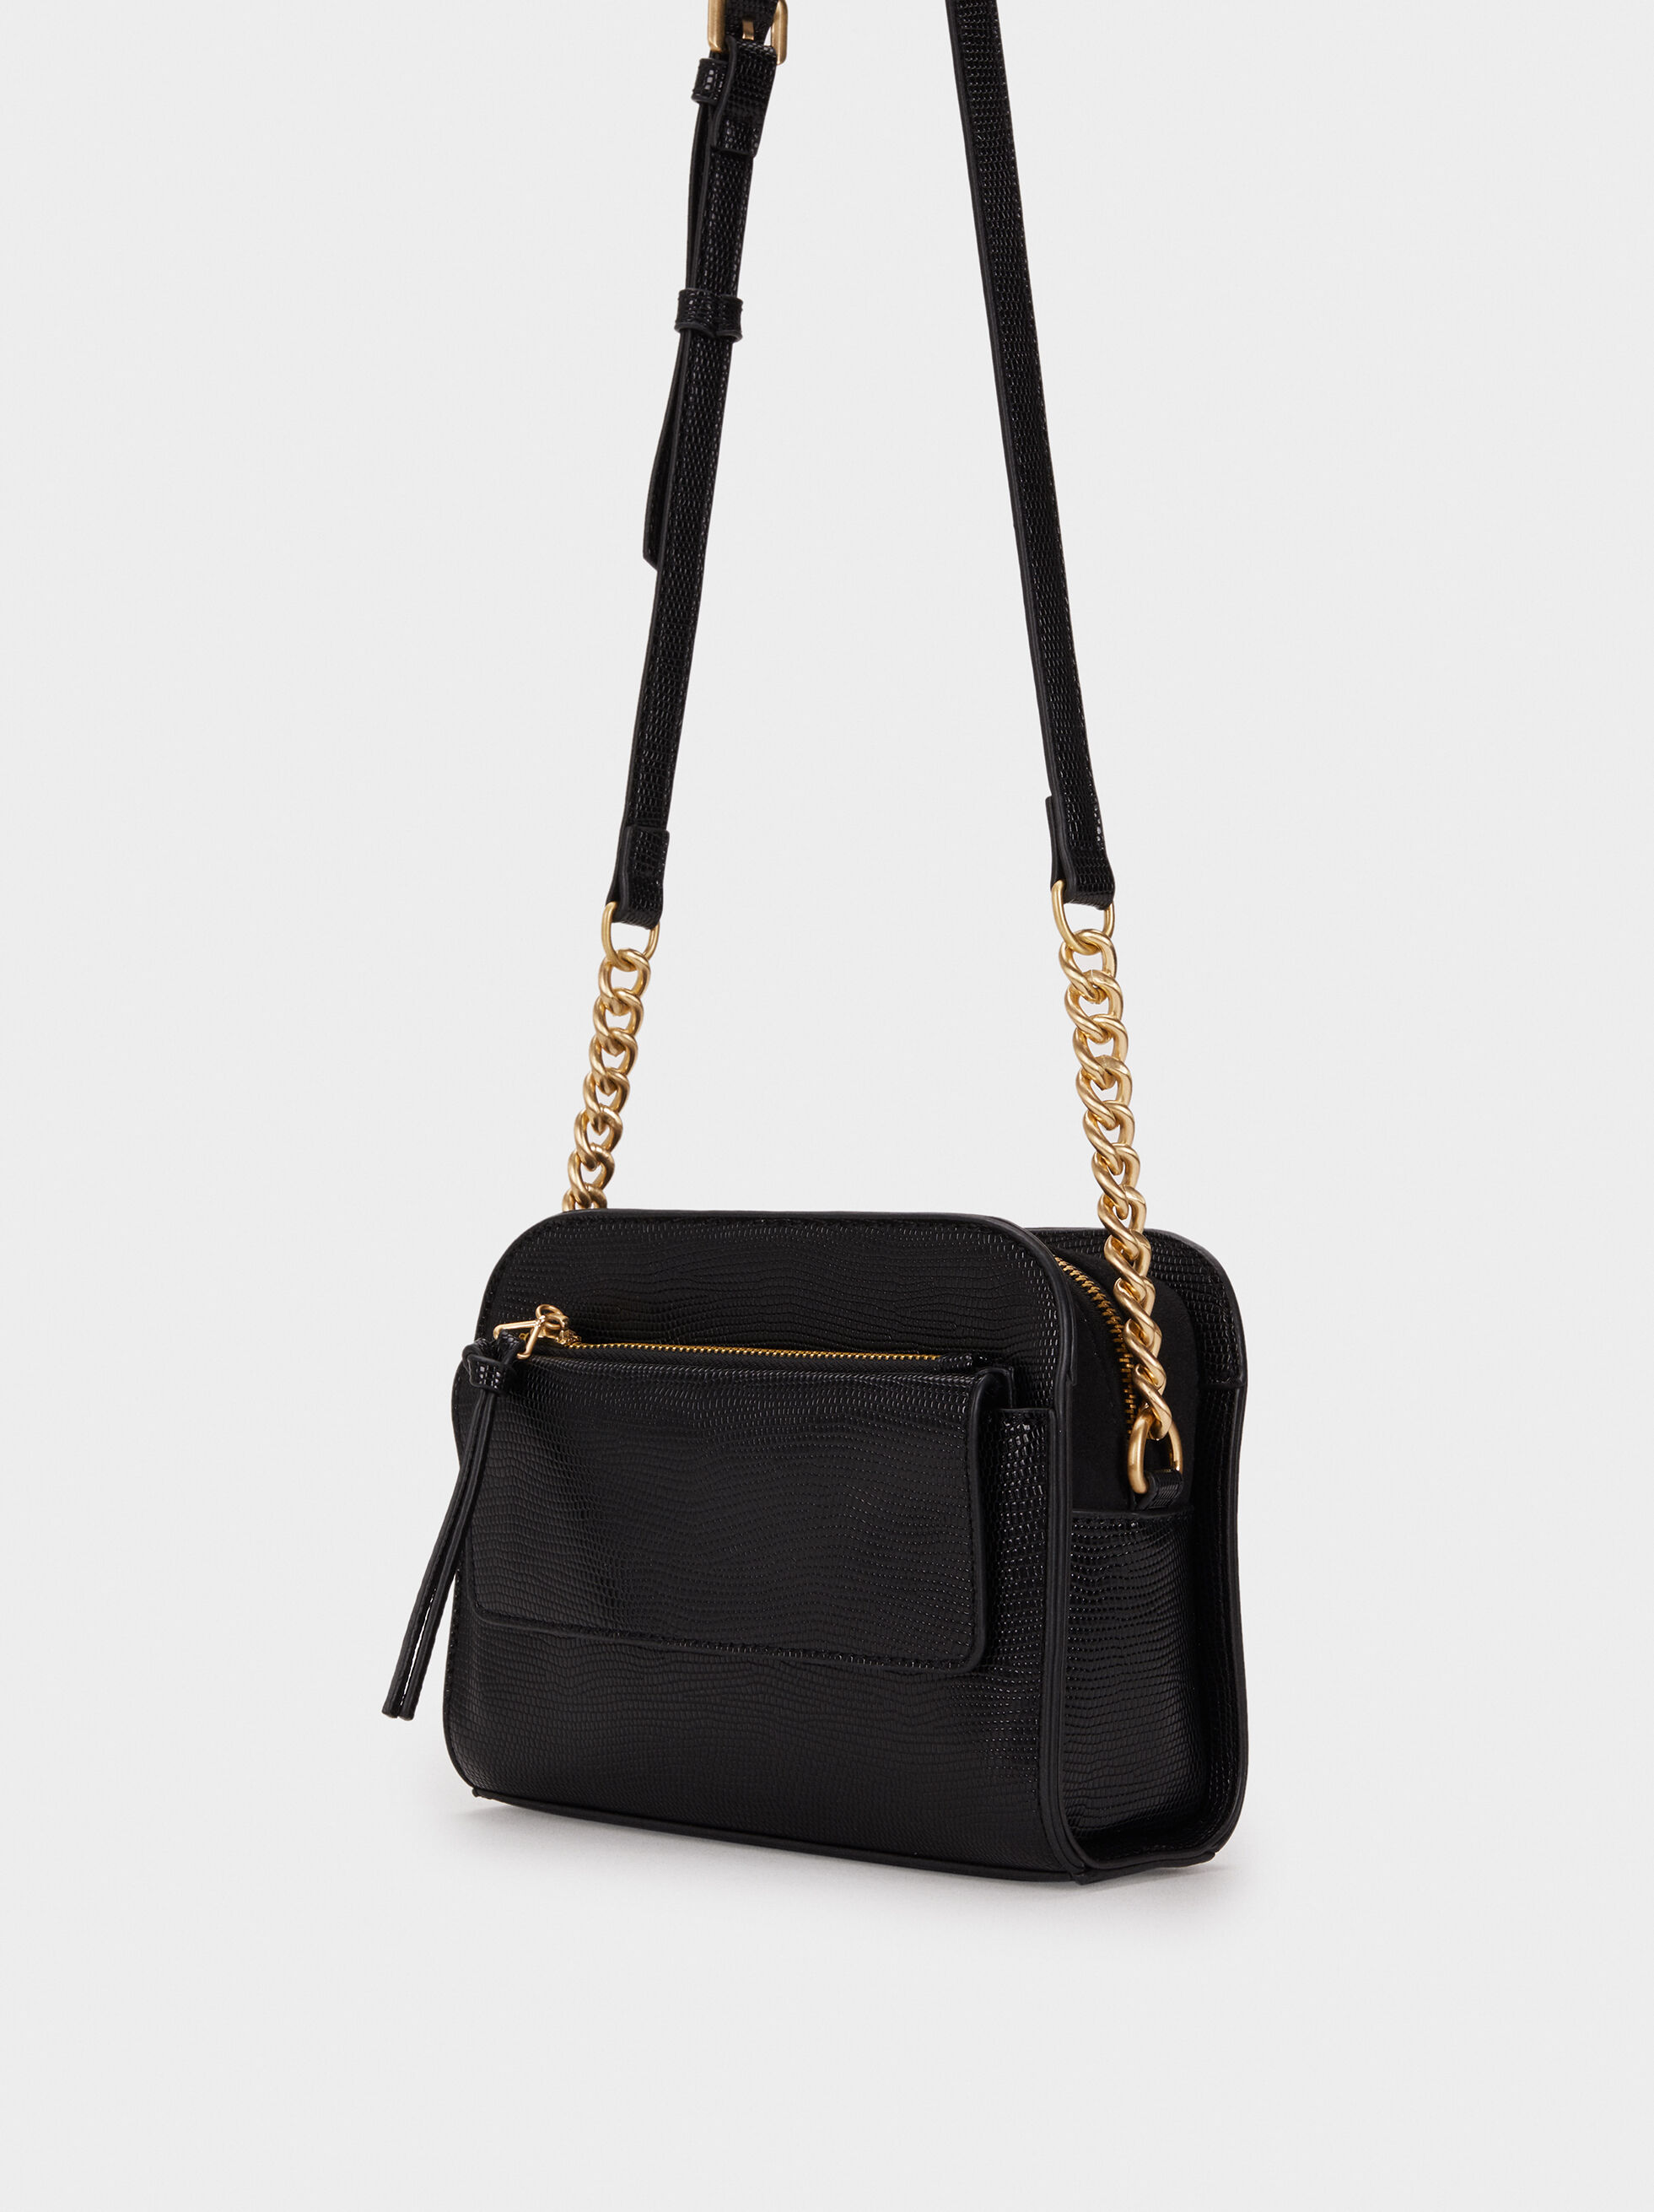 Animal Embossed Shoulder Bag, Black, hi-res